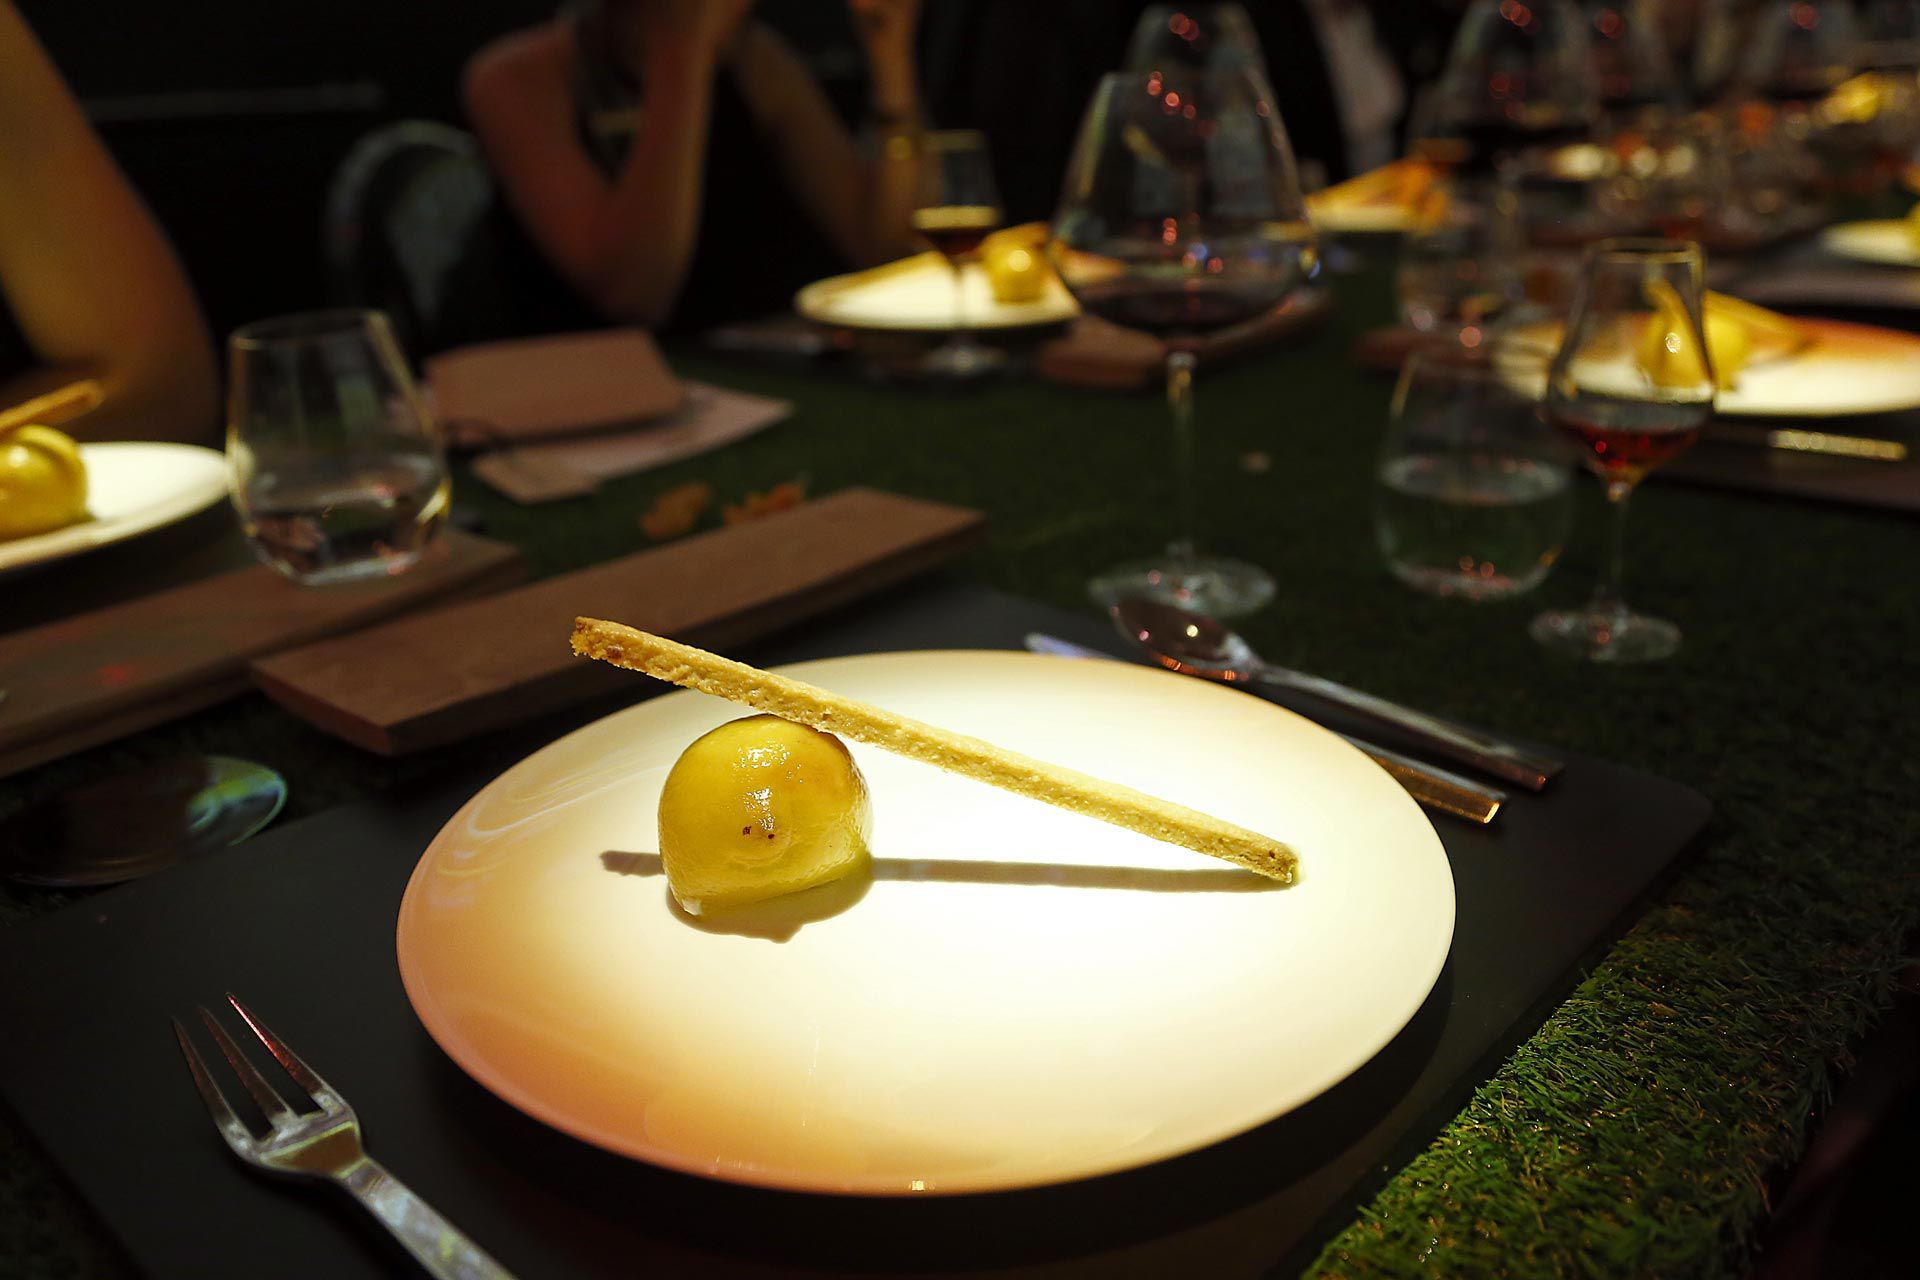 MARTELL'S LIBRARY - Lemon & Lemon Tart paired with Martell Premier Voyage